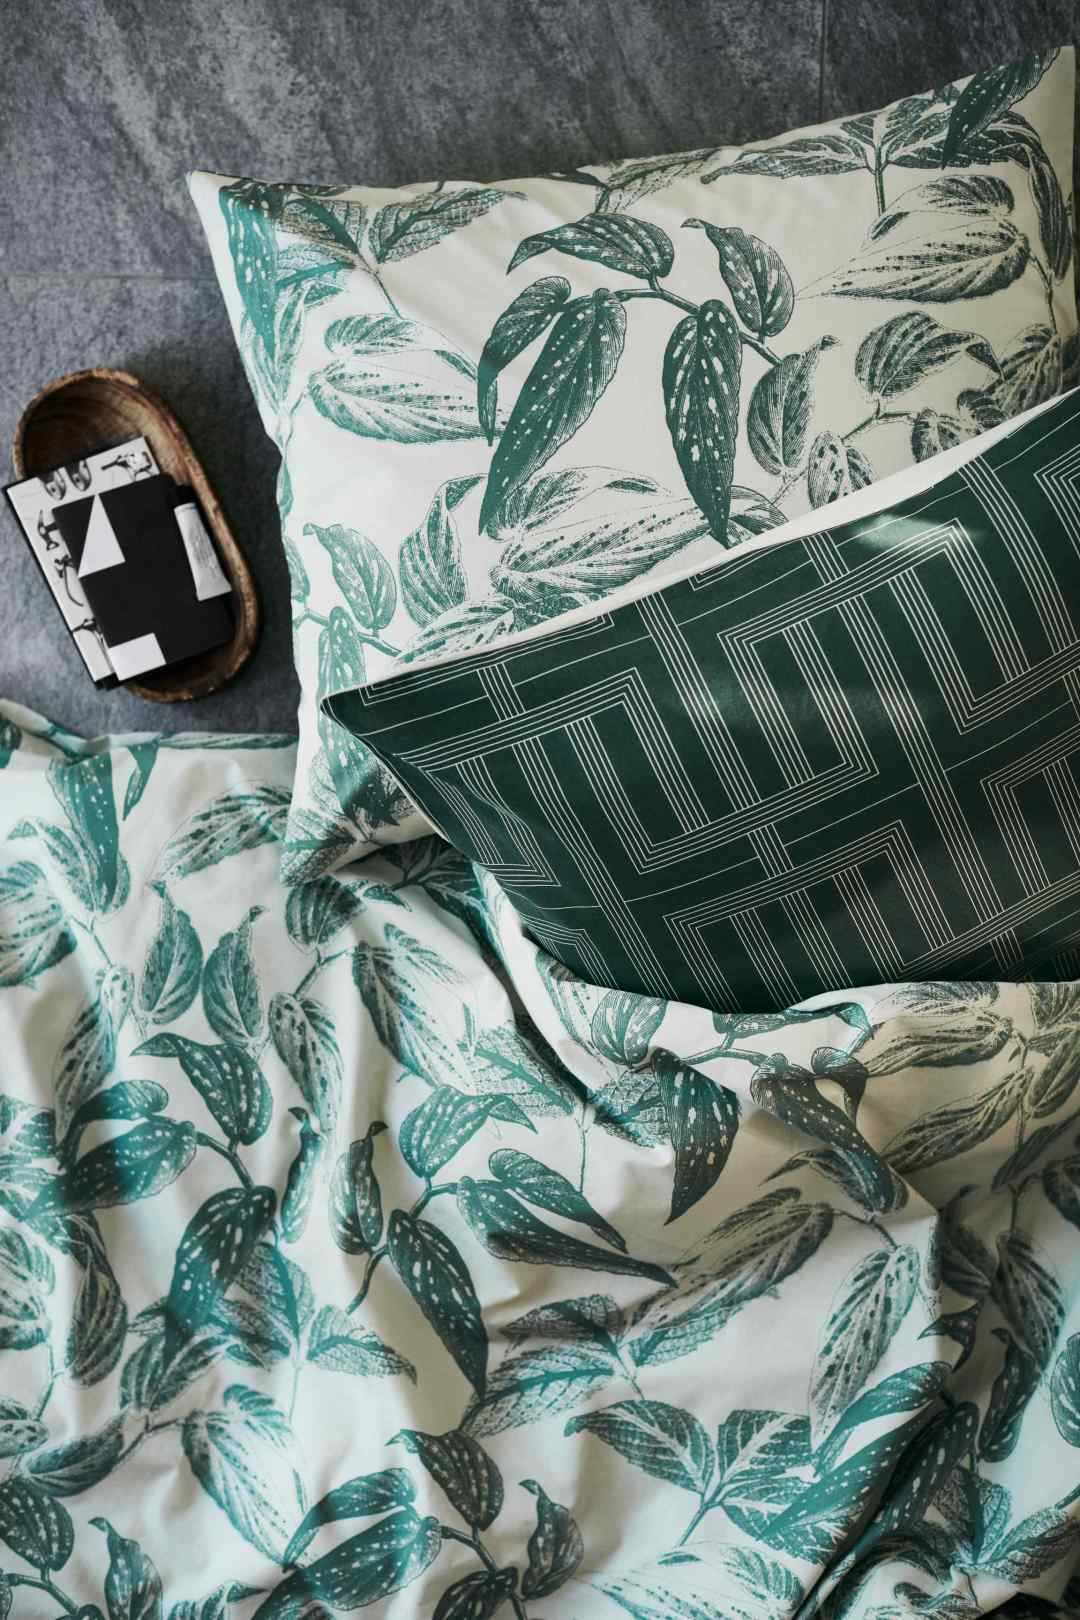 Leaf print duvet cover set by H&M Home - Tropical bedroom- Transform your home into a tropical paradise | Aliz's Wonderland